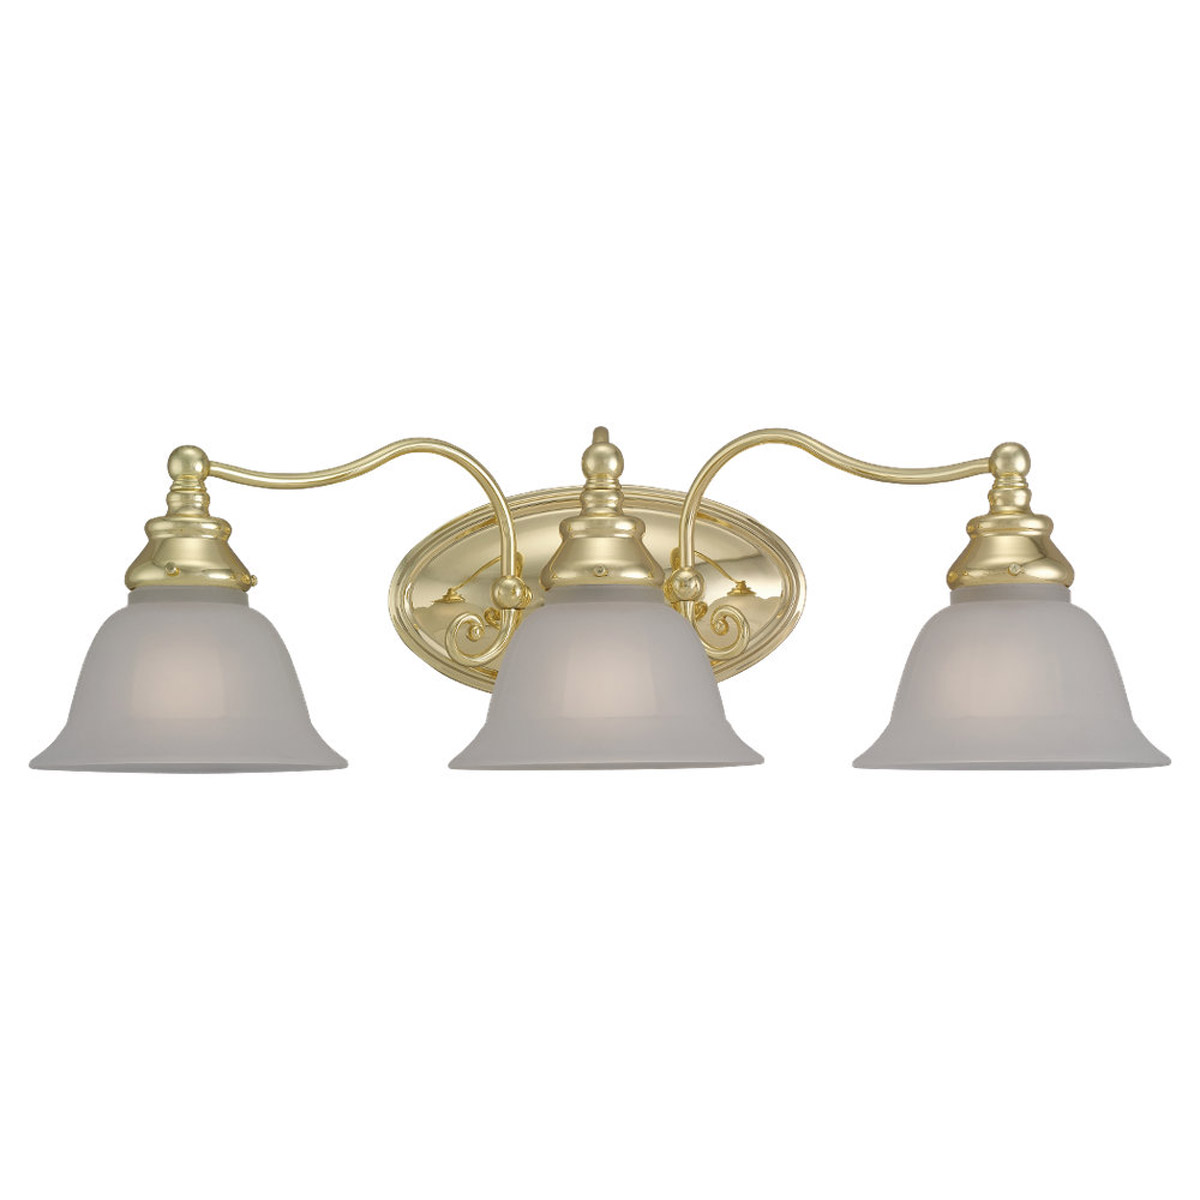 Sea Gull Lighting Canterbury 3 Light Bath Vanity in Polished Brass 44652-02